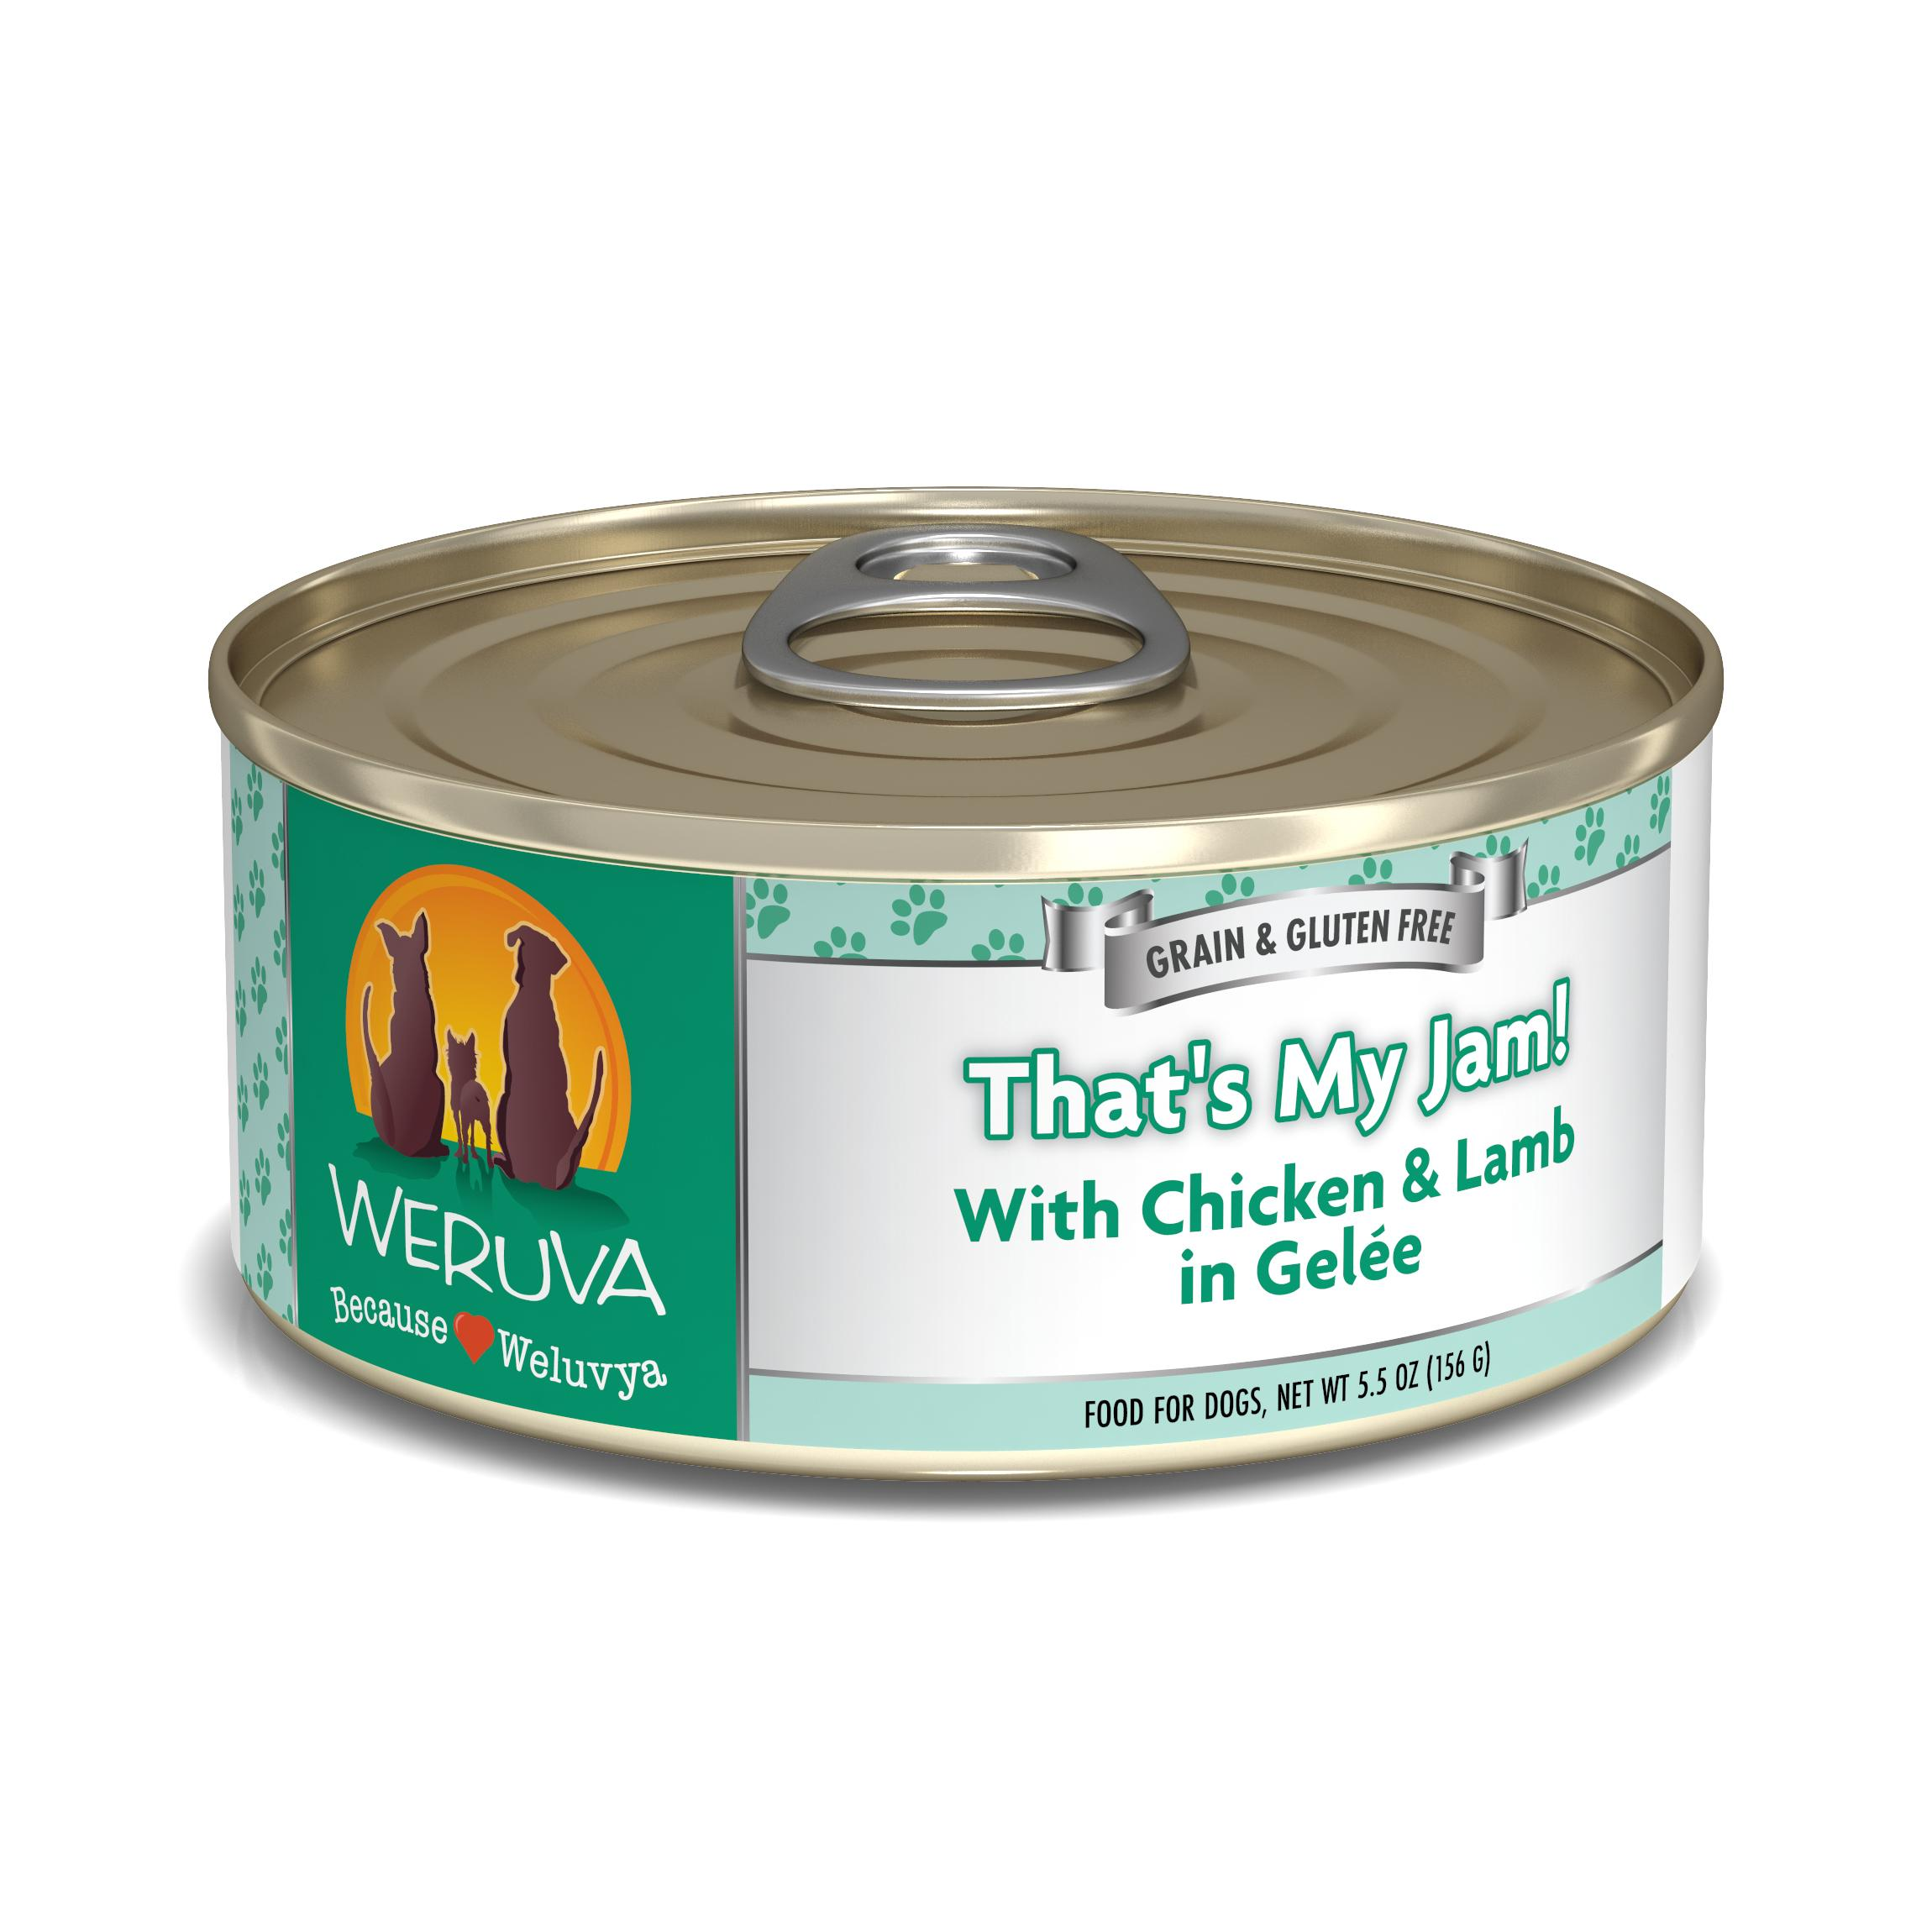 Weruva Dog Classic That's My Jam! With Chicken & Lamb in Gelee Grain-Free Wet Dog Food, 5.5-oz